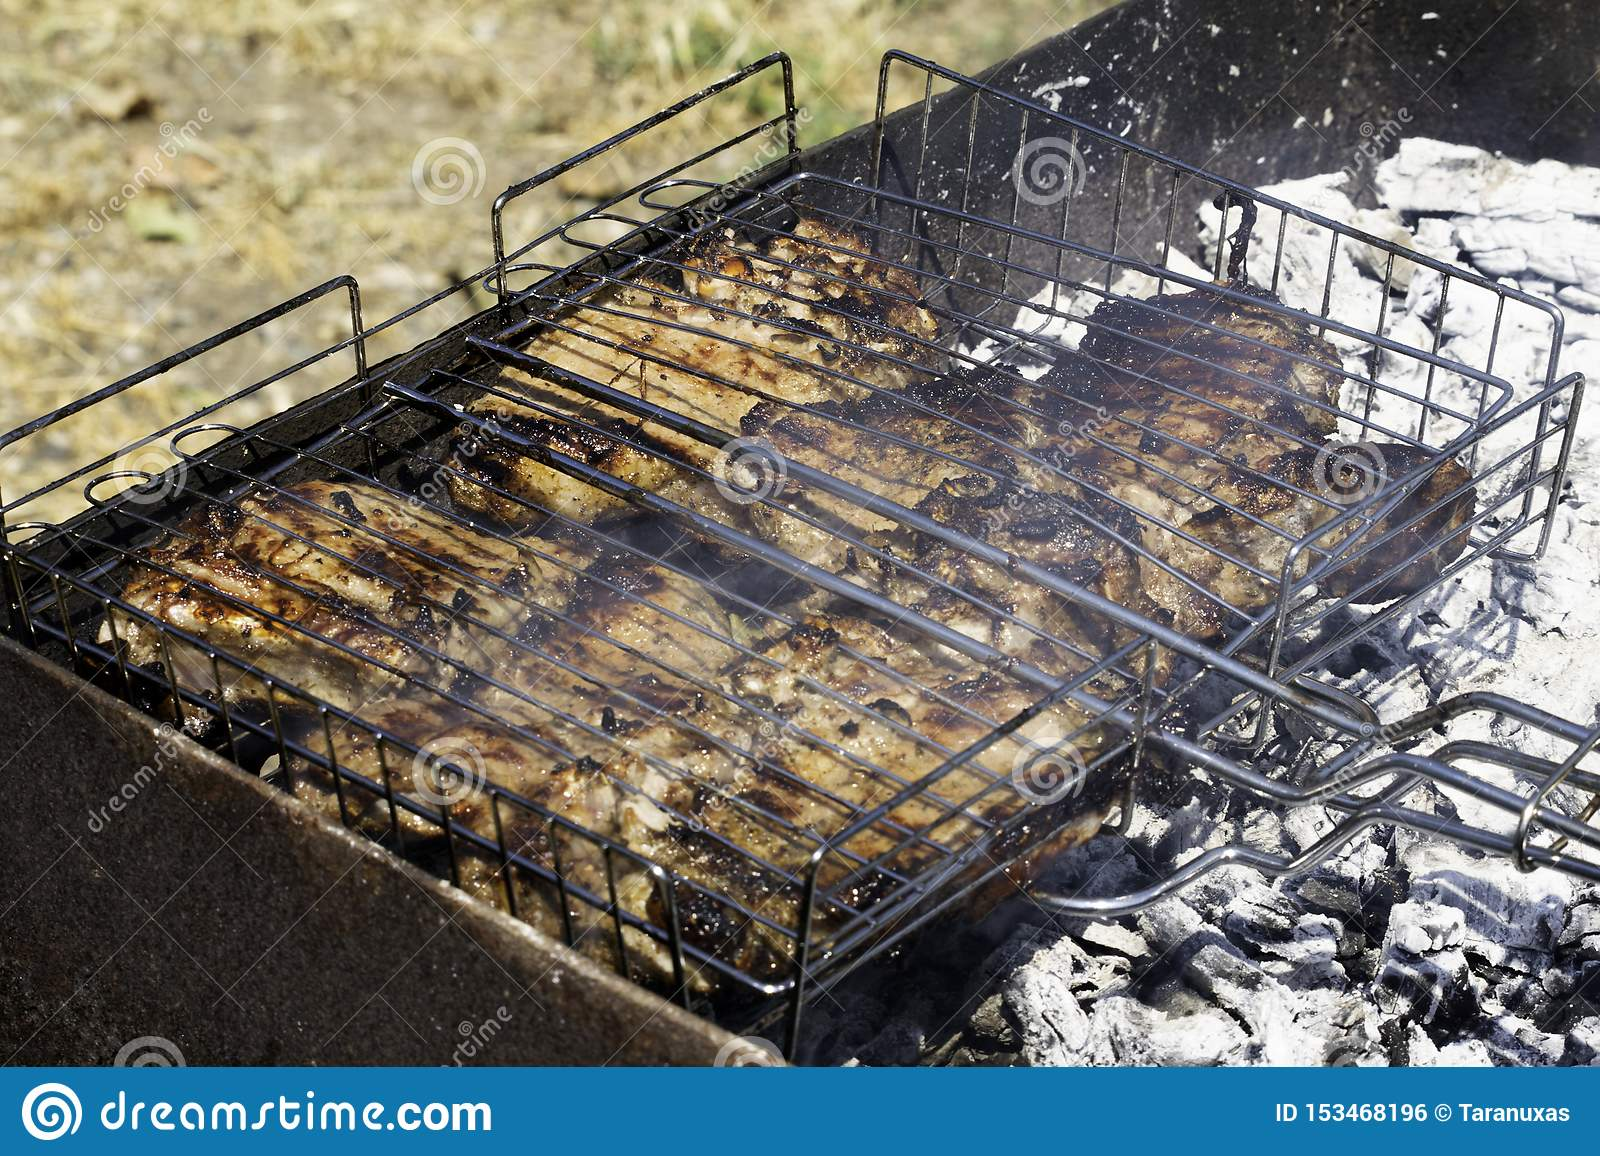 Grilled Meat On A Charcoal Grill Embers Smoke Ash Stock Photo Image Of Flavoring Barbecue 153468196